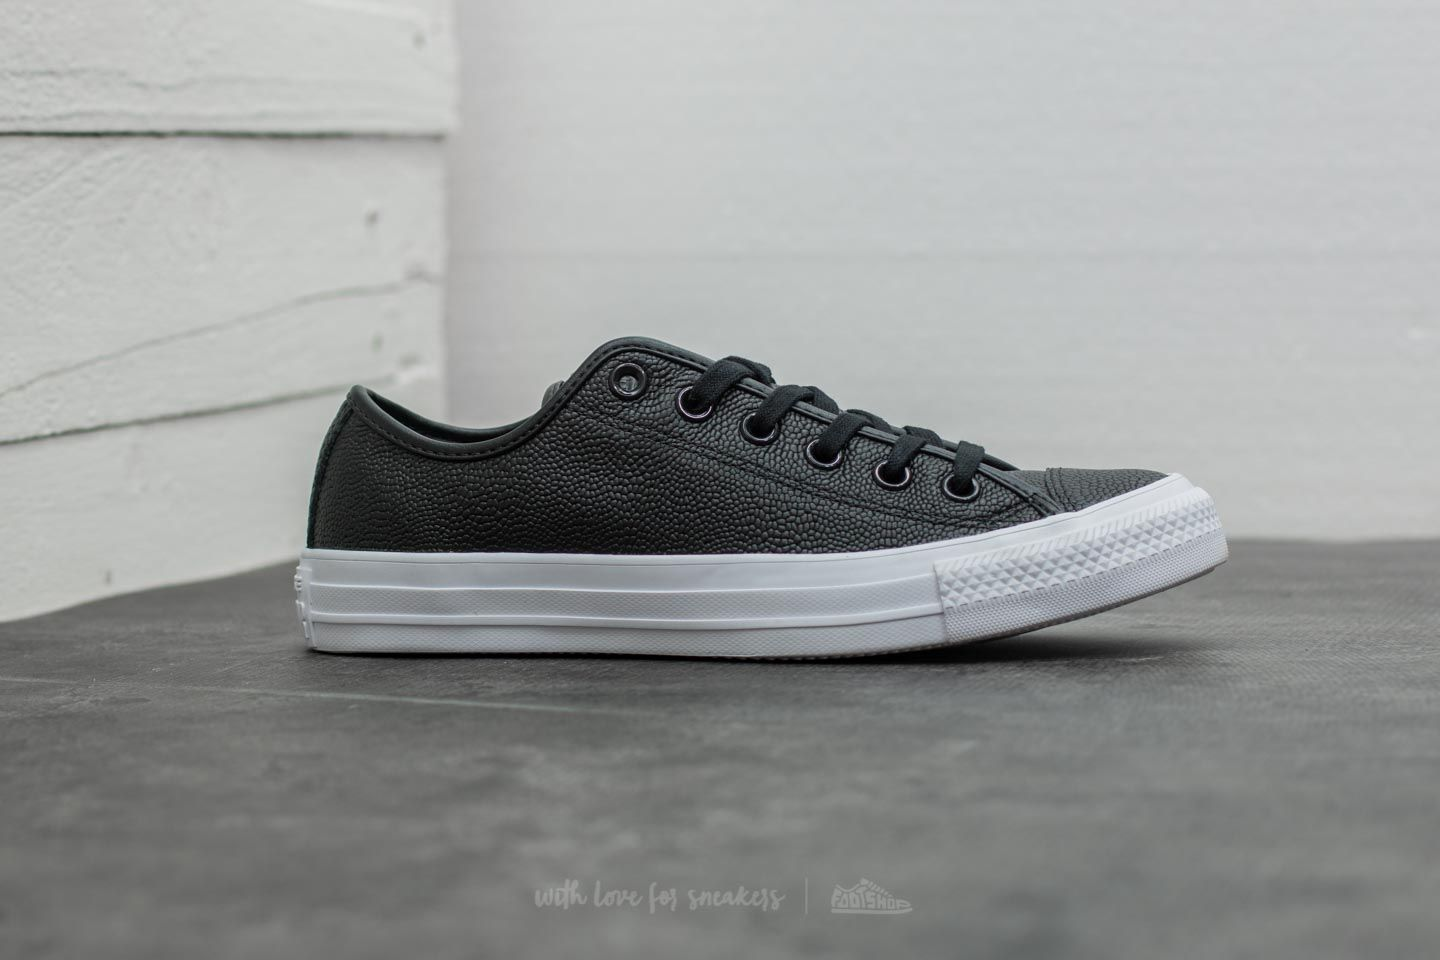 164e3e5f9393 ... wholesale converse chuck taylor all star ox black black white at a  great price 66 76129 ...